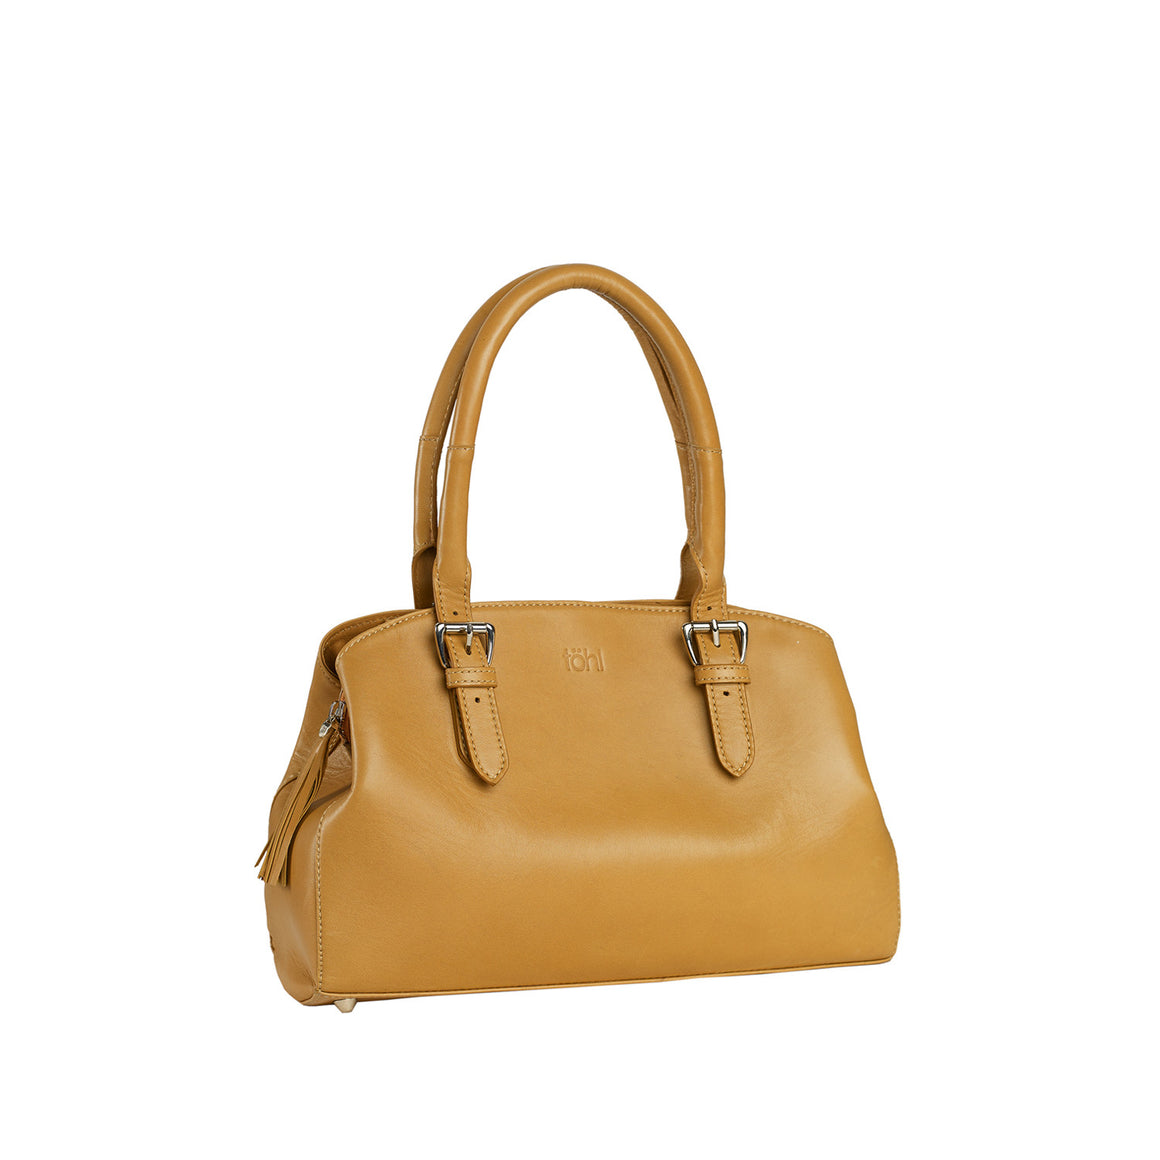 HH 0010 - TOHL ALVA WOMEN'S DAY BAG - SUN